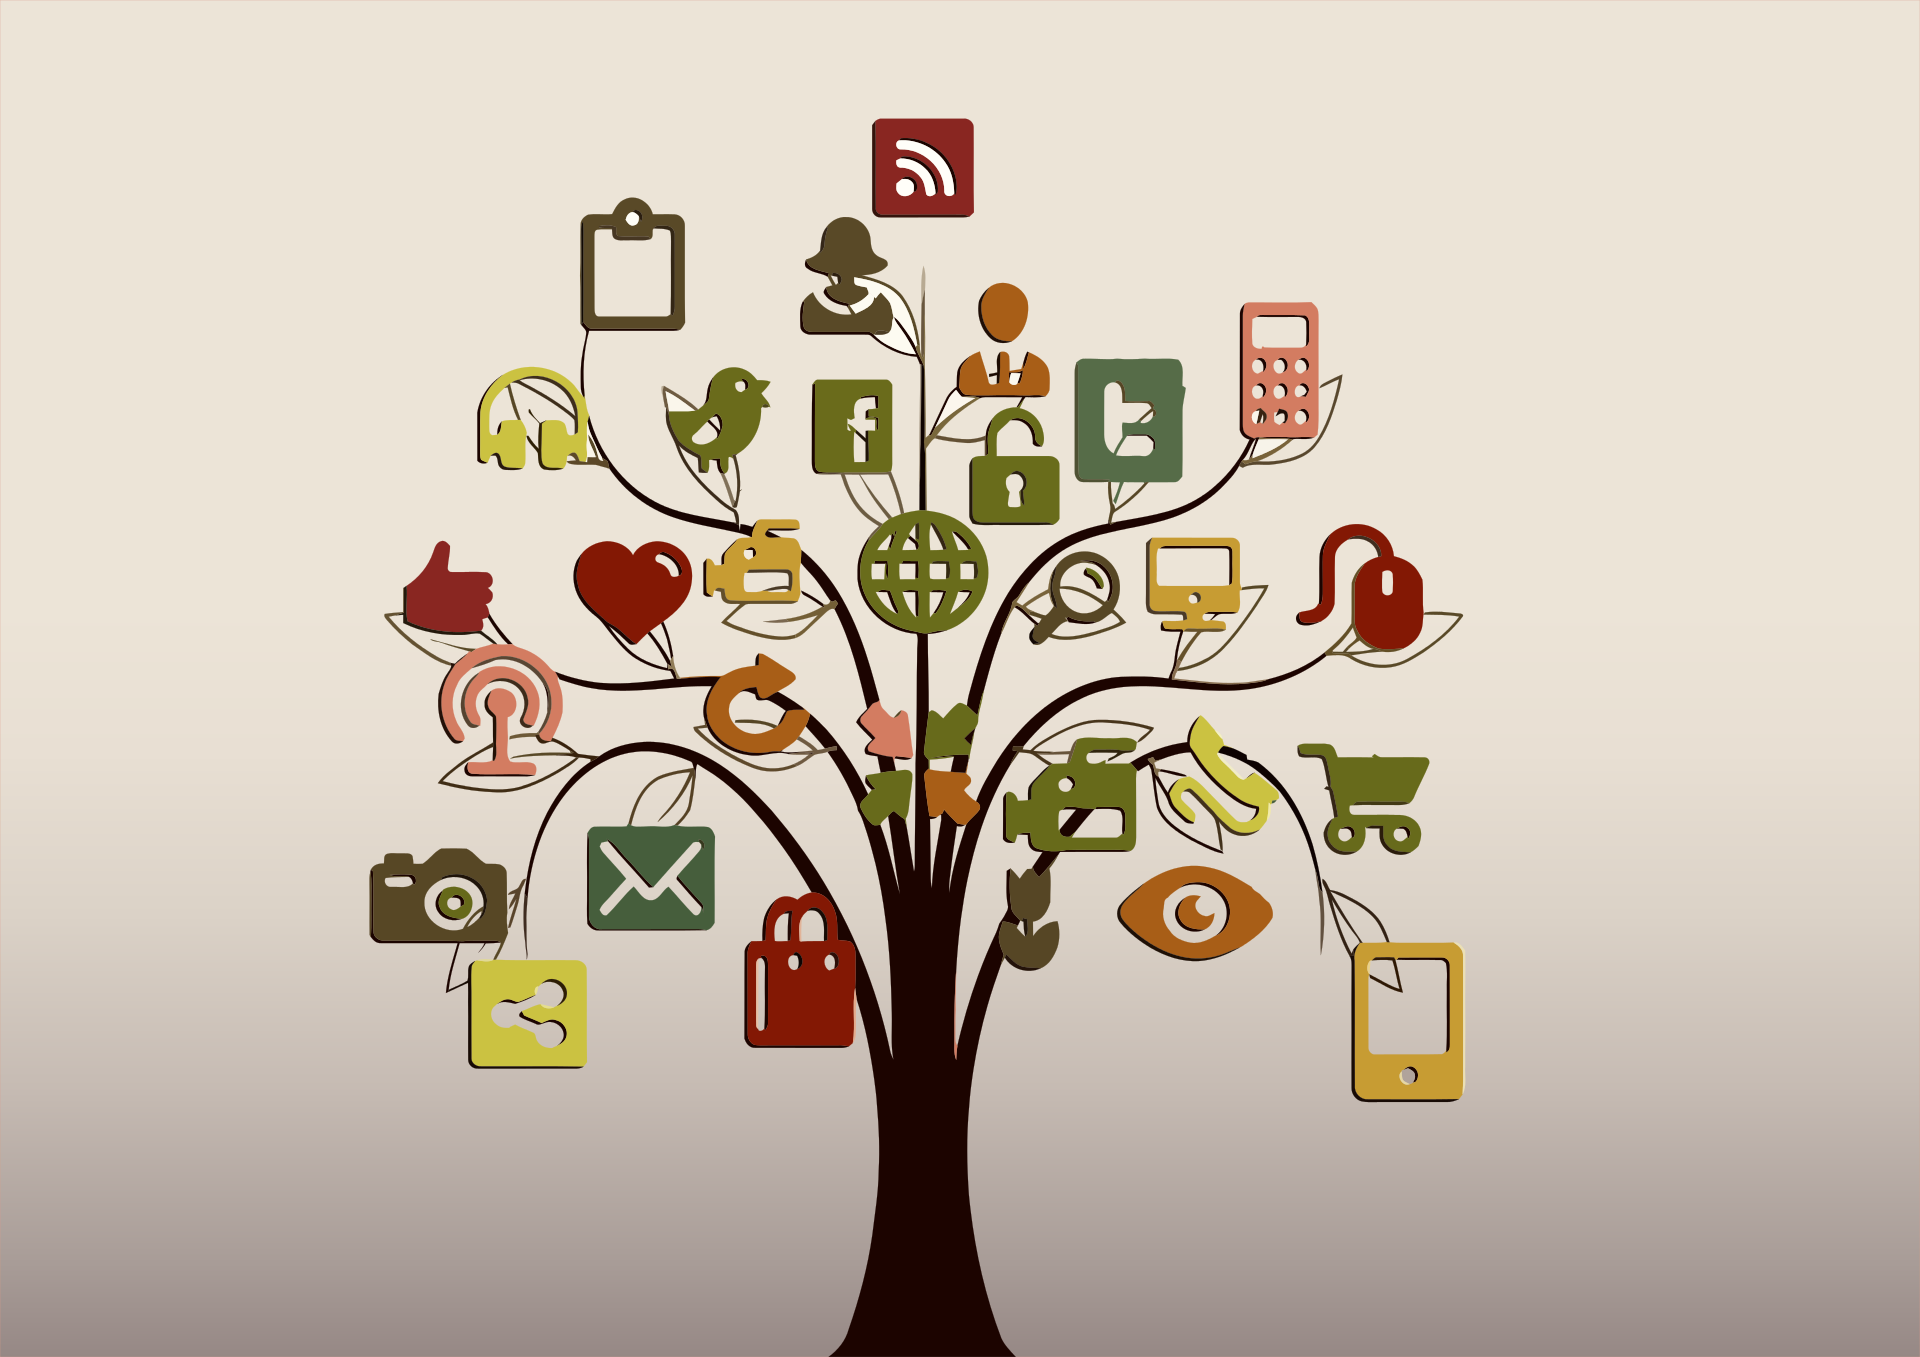 Lettings Agents: Are You Using Social Media Effectively?